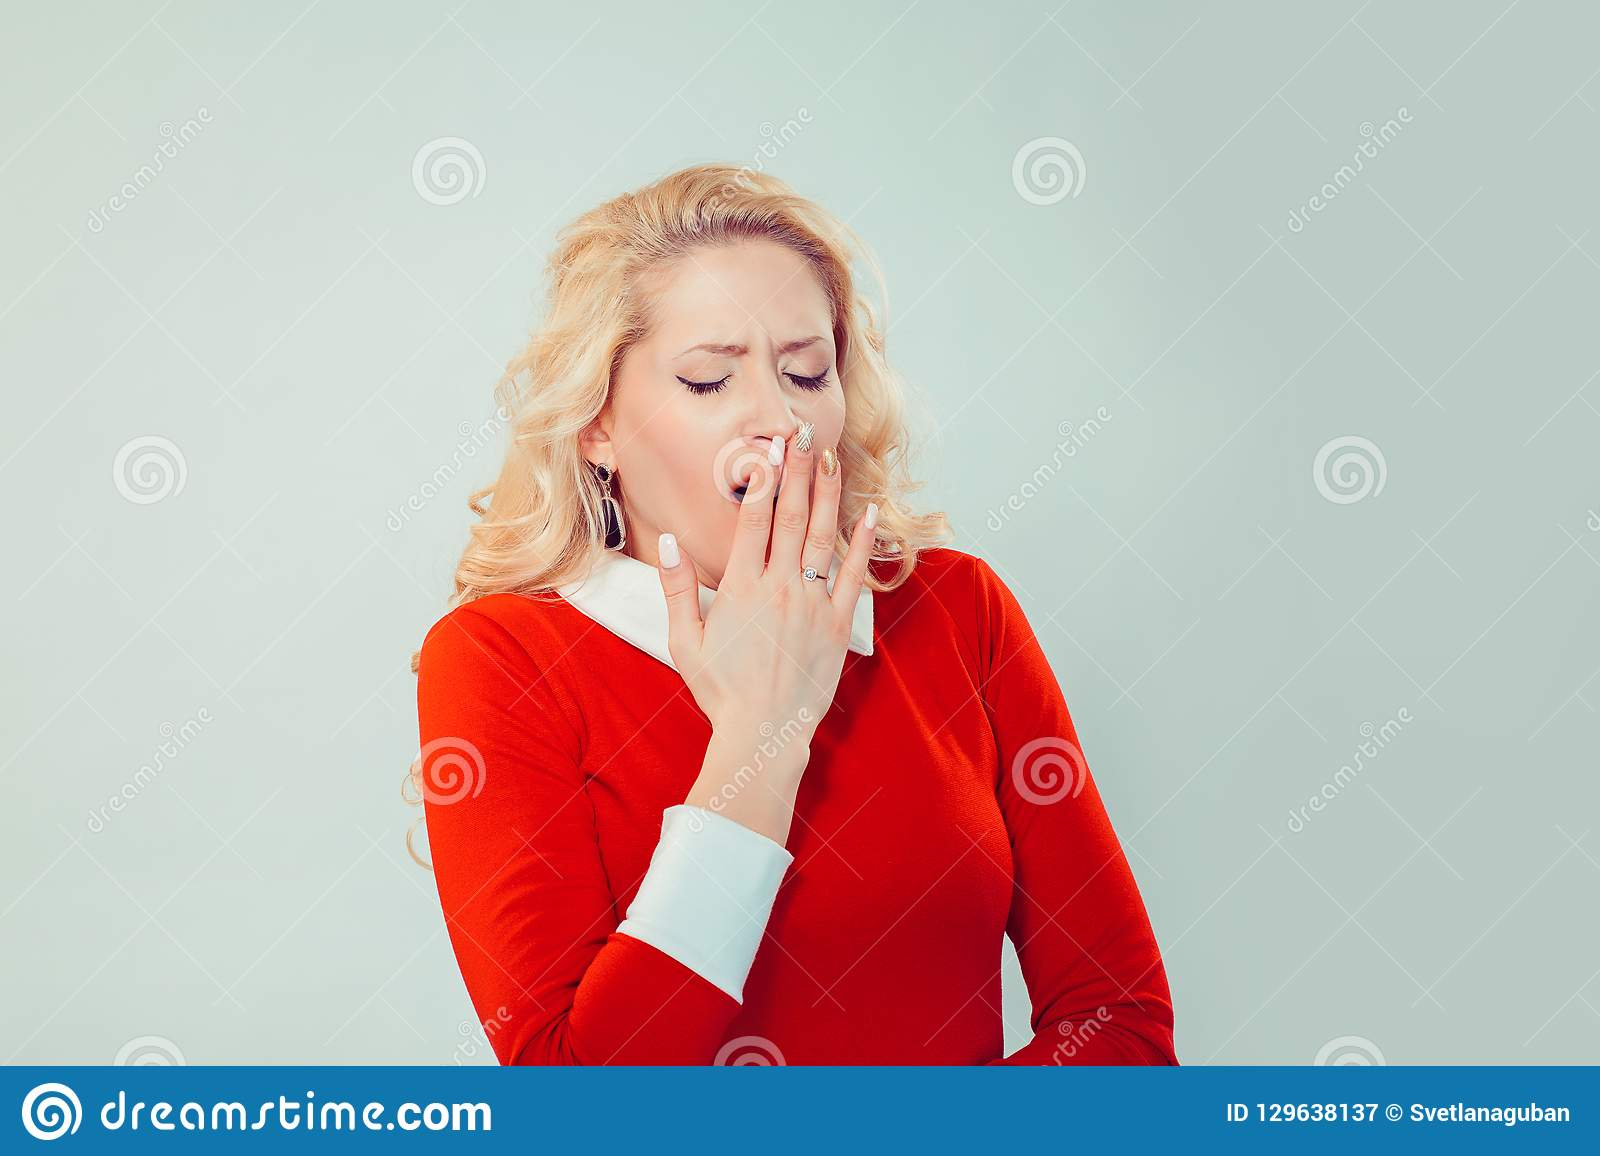 Sleepy woman covering mouth while yawning